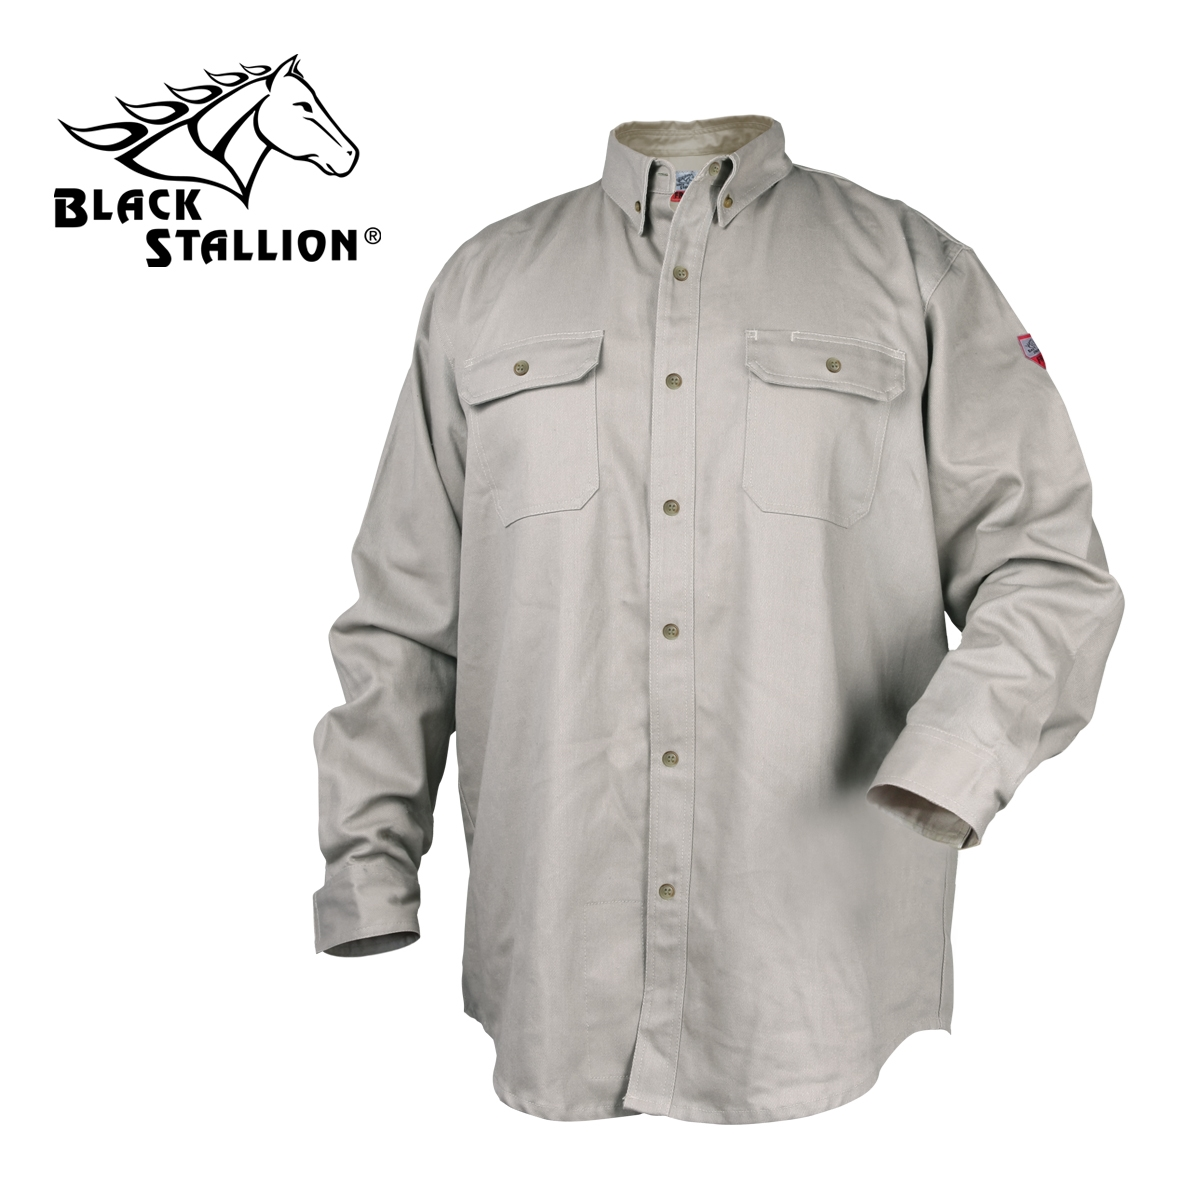 TruGuard 300 FR Work Shirt